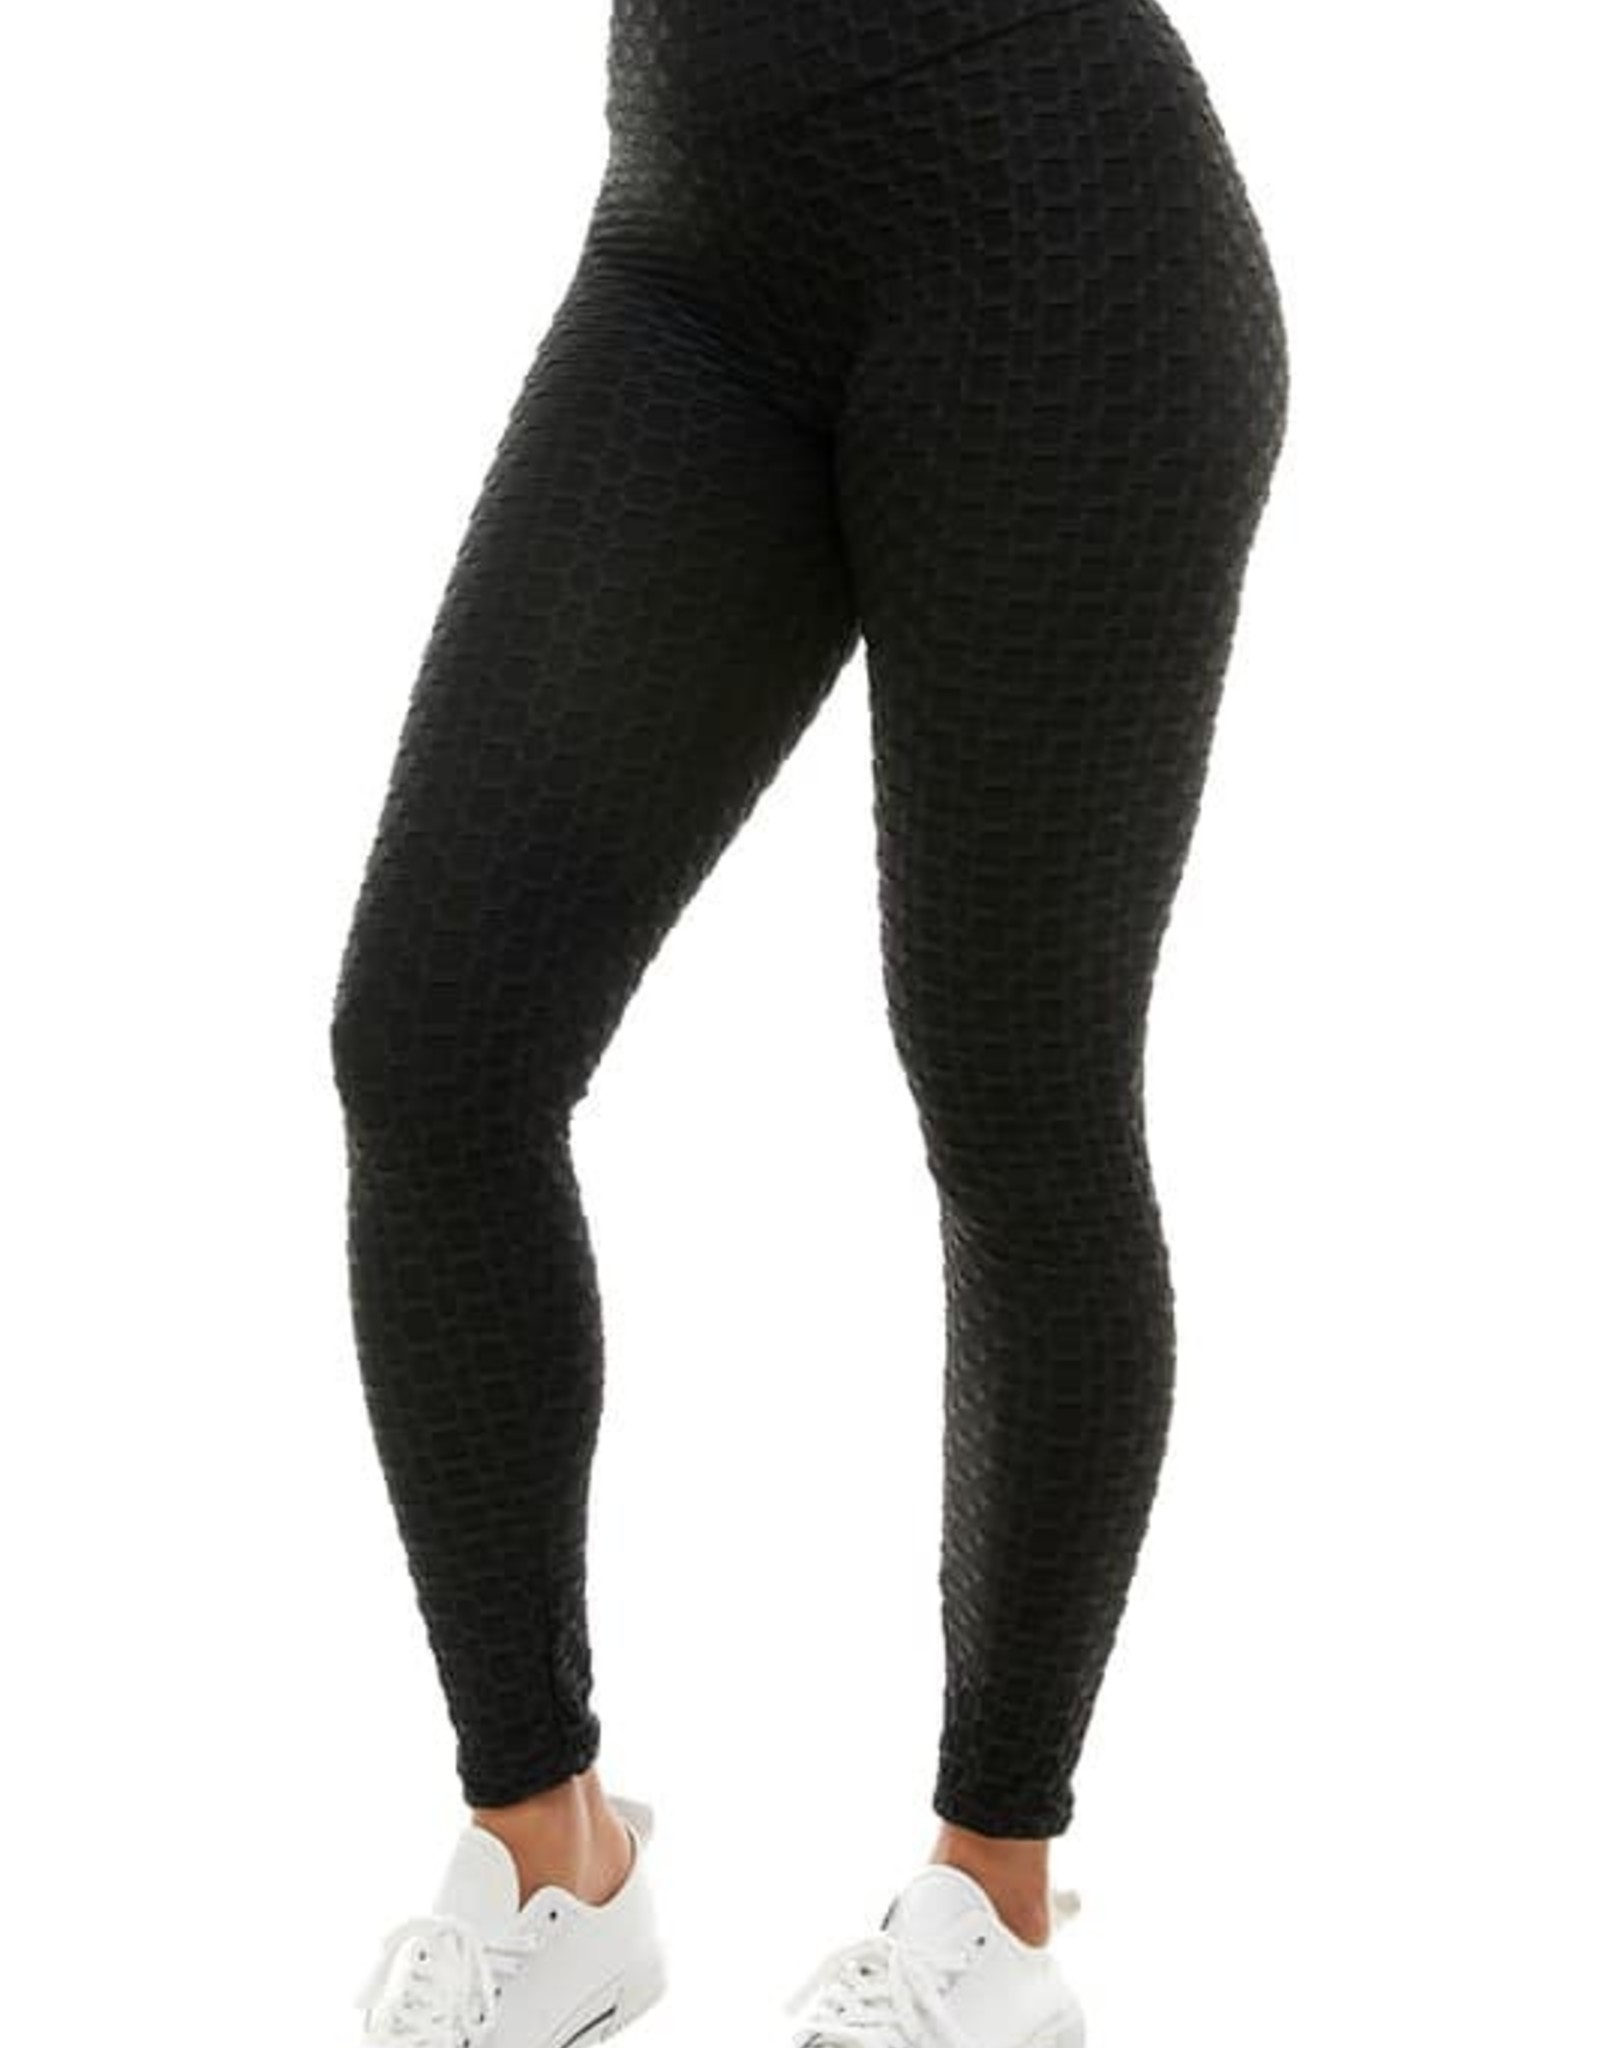 Honeycomb Booty Scrunch Leggings